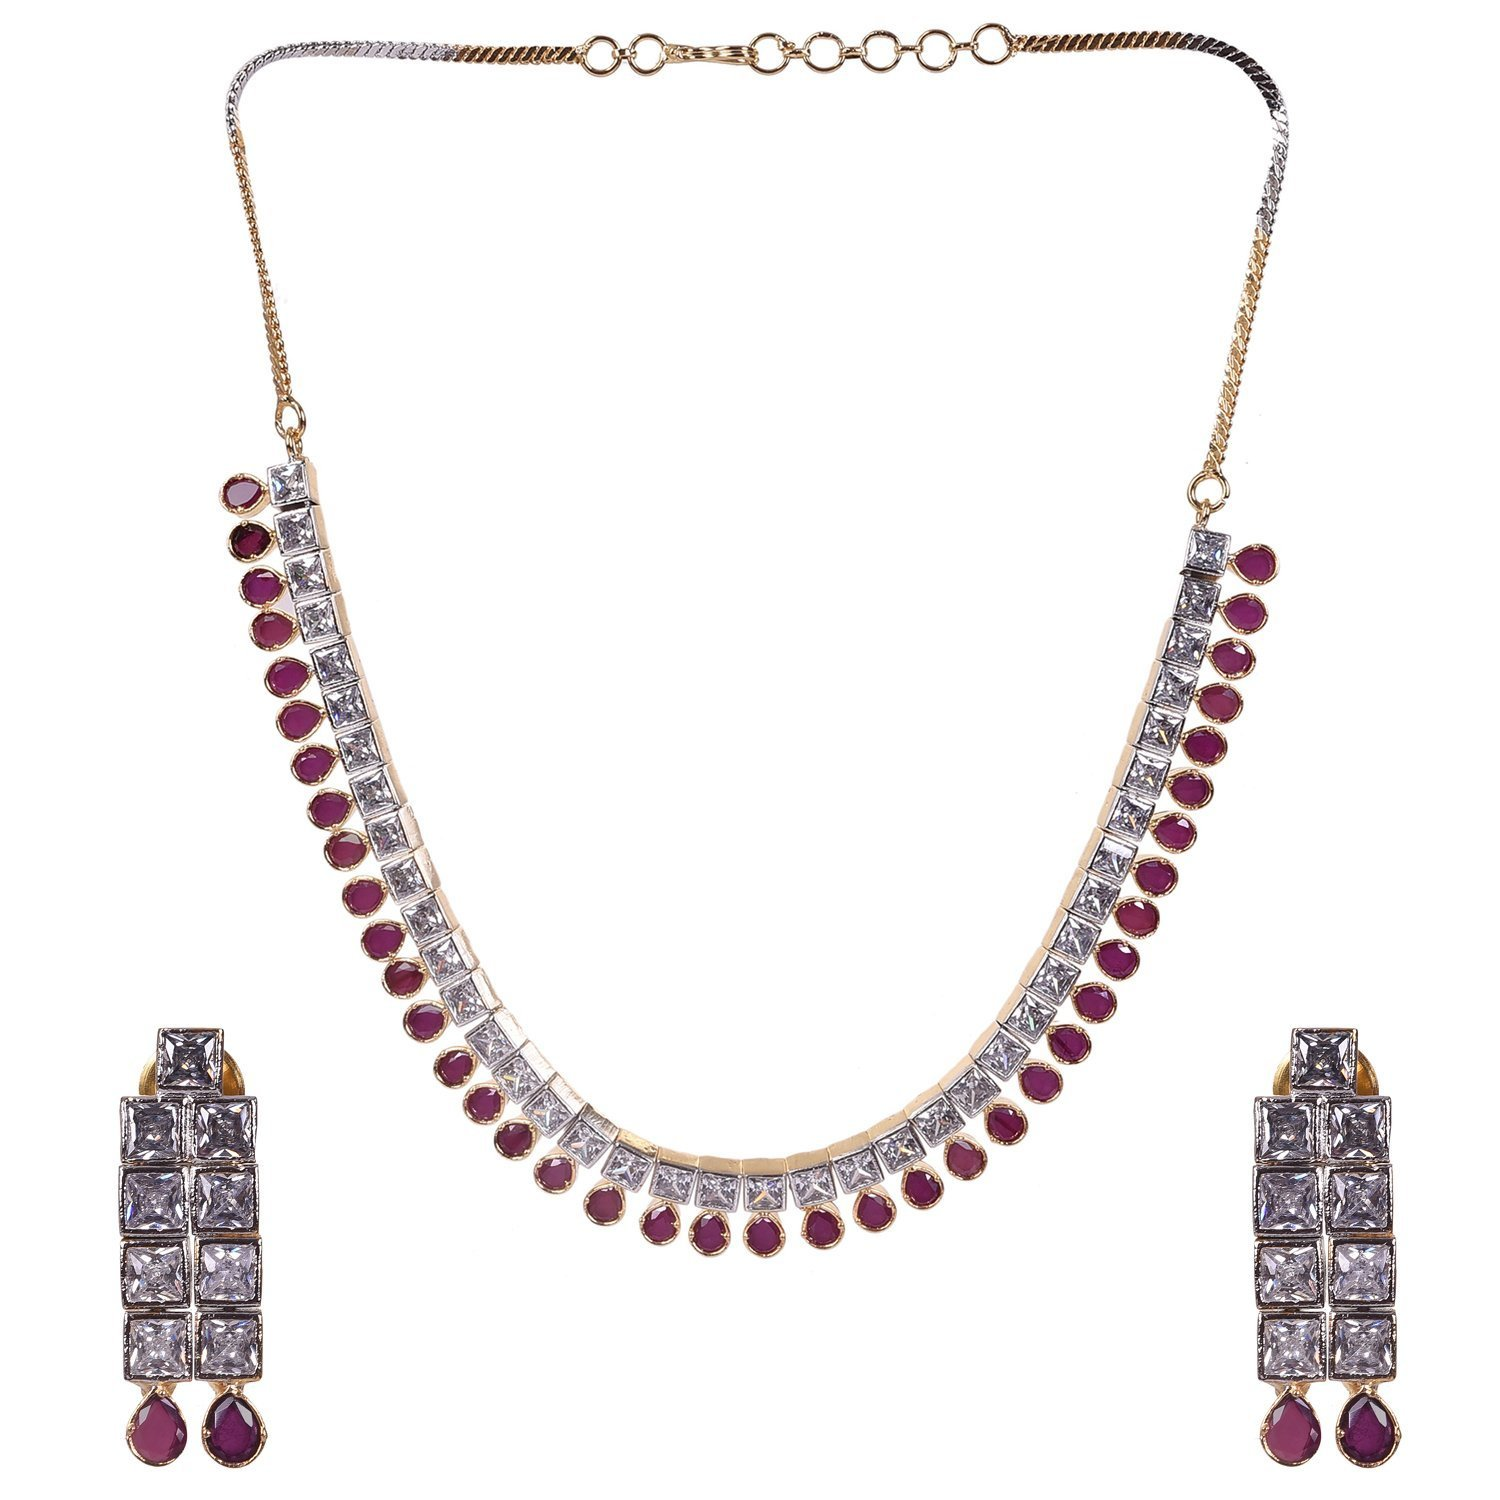 Ratnavali Jewels Cubic Zirconia Gold Plated Designer Necklace Set (RV476)